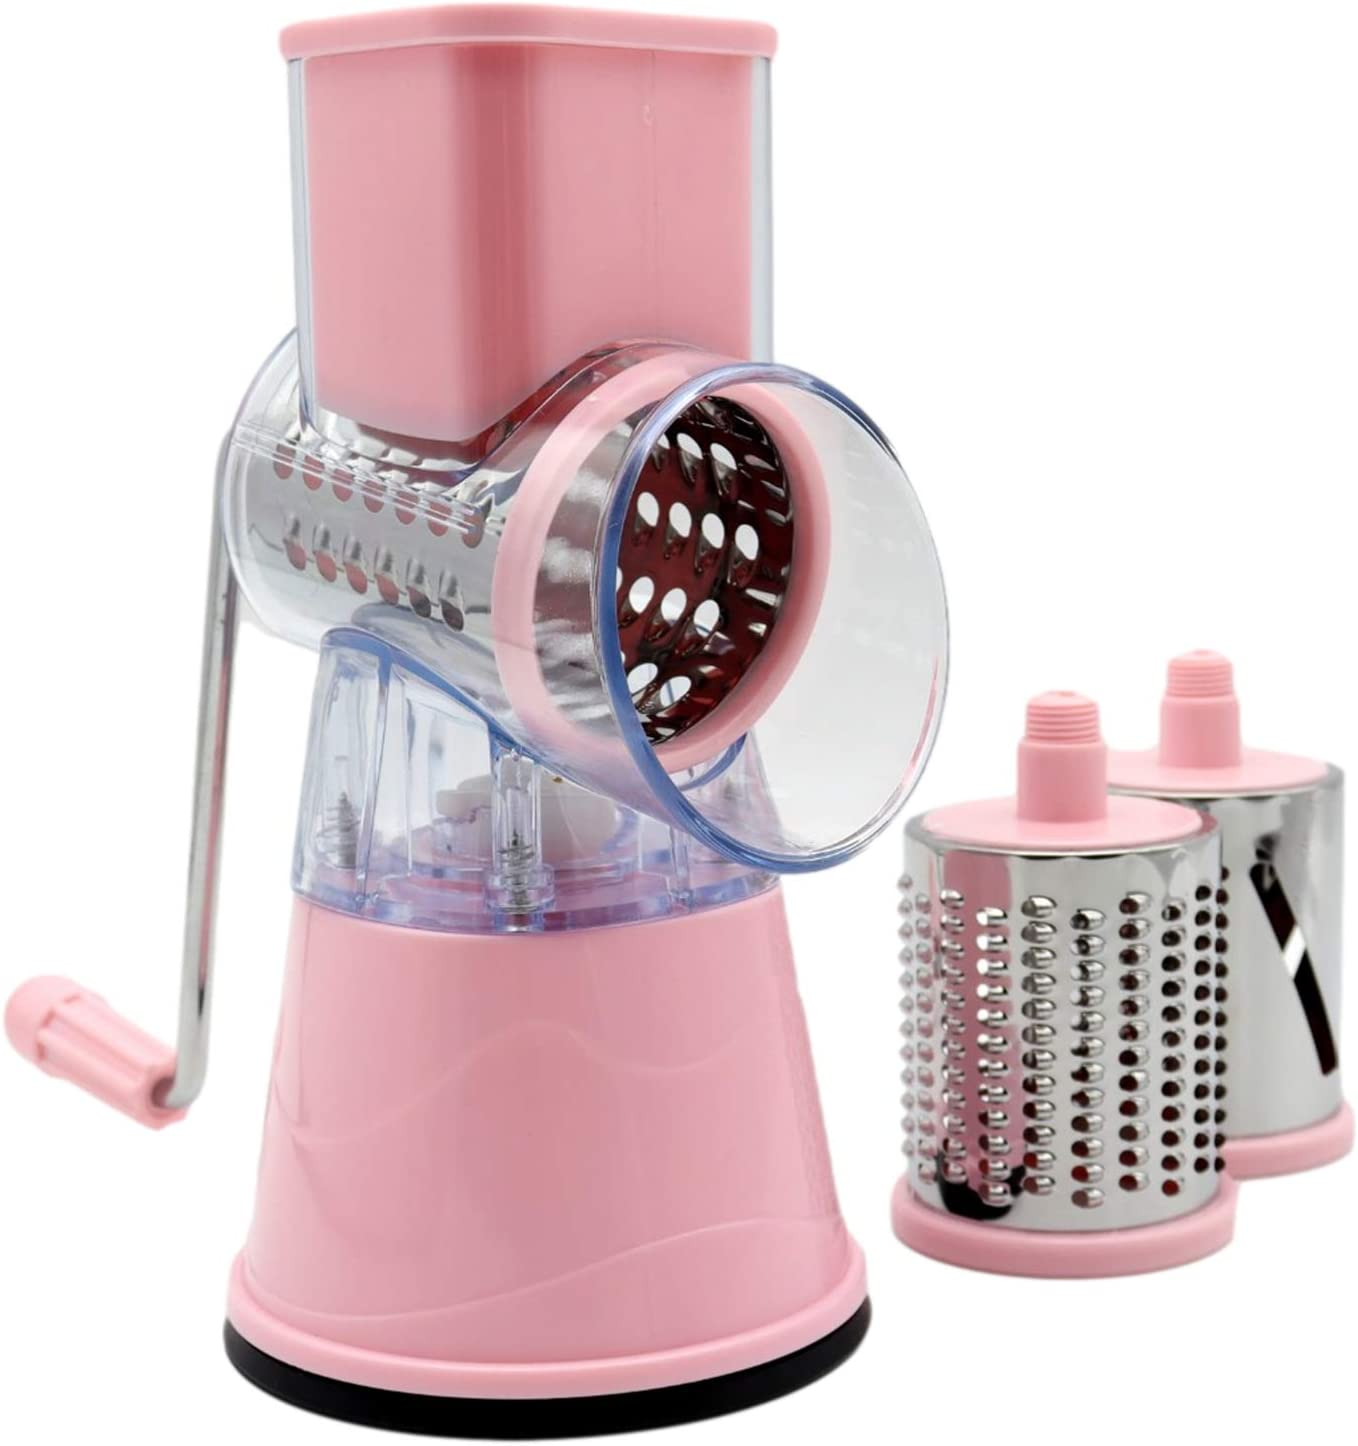 Cheng Rotary Cheese Grater for Kitchen, 3 in 1 Metal Handle Vegetable Shredder Round Mandolin Slicer Nut Chopper Grinder with 3 replaceable Blades(pink)